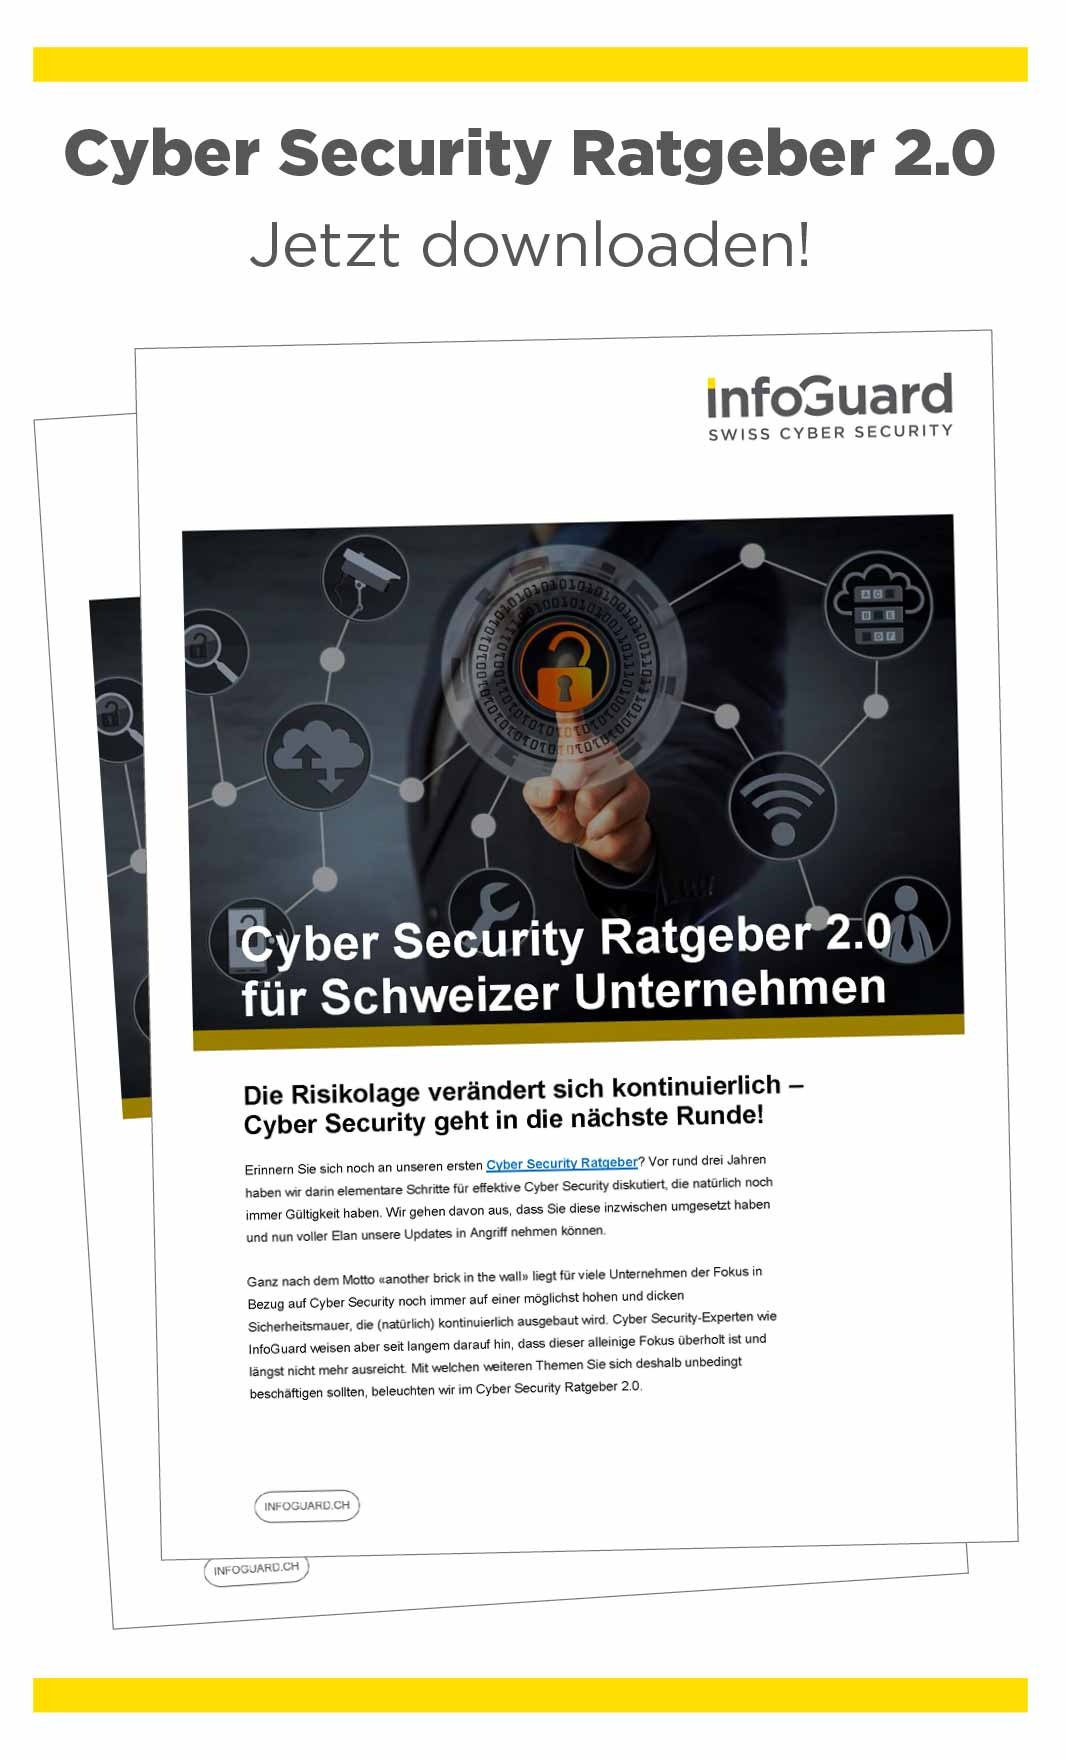 infoguard-cyber-security-ratgeber-2